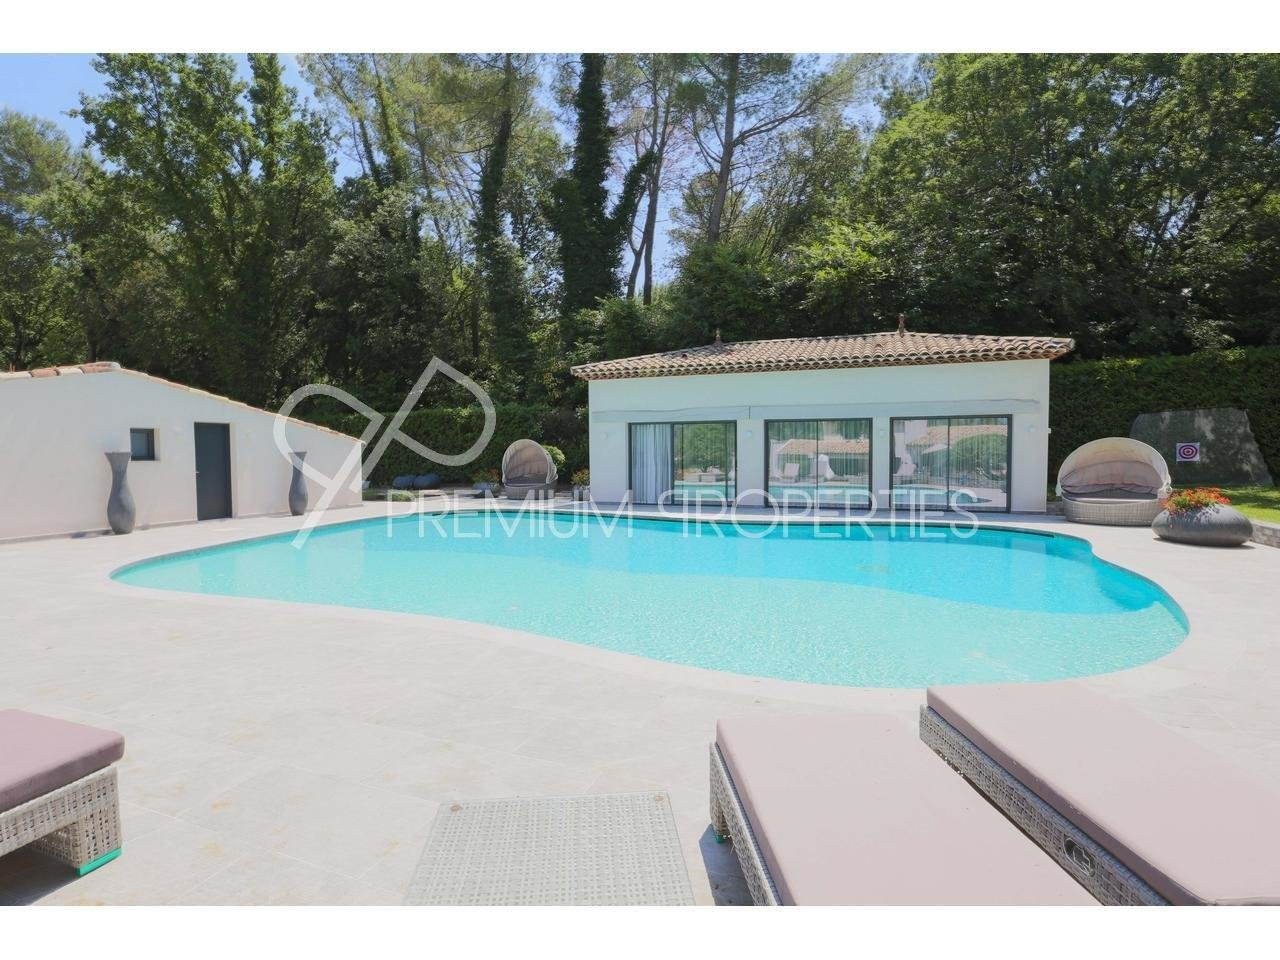 VALBONNE - SOMPTUOUS PROPERTY IN GATED DOMAIN Maison  10 Rooms 610m2  for sale  4 200 000 €